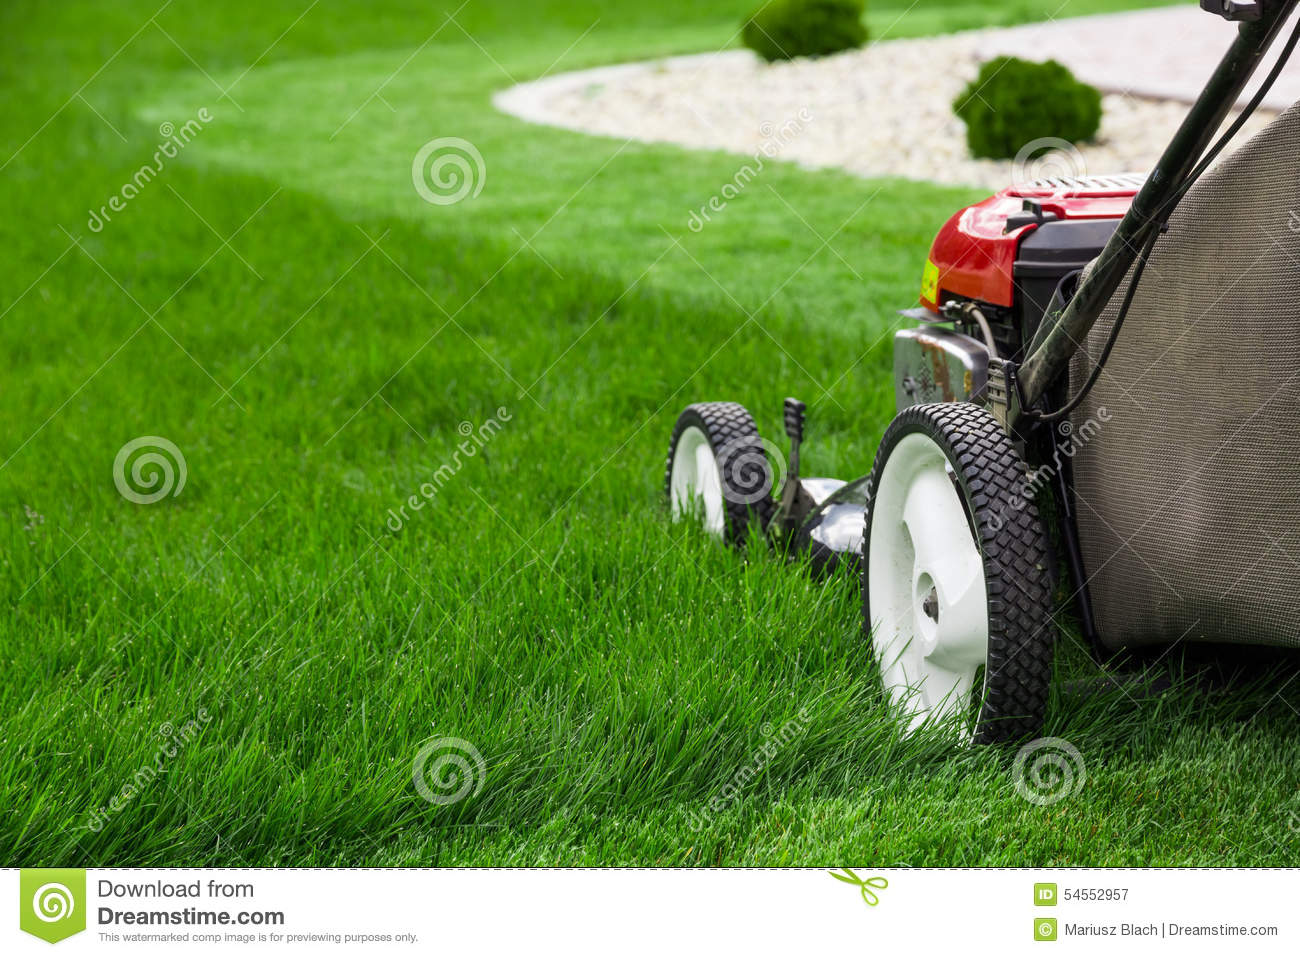 Lawn mower cutting grass on white background 3d rendering for Lawn mower cutting grass